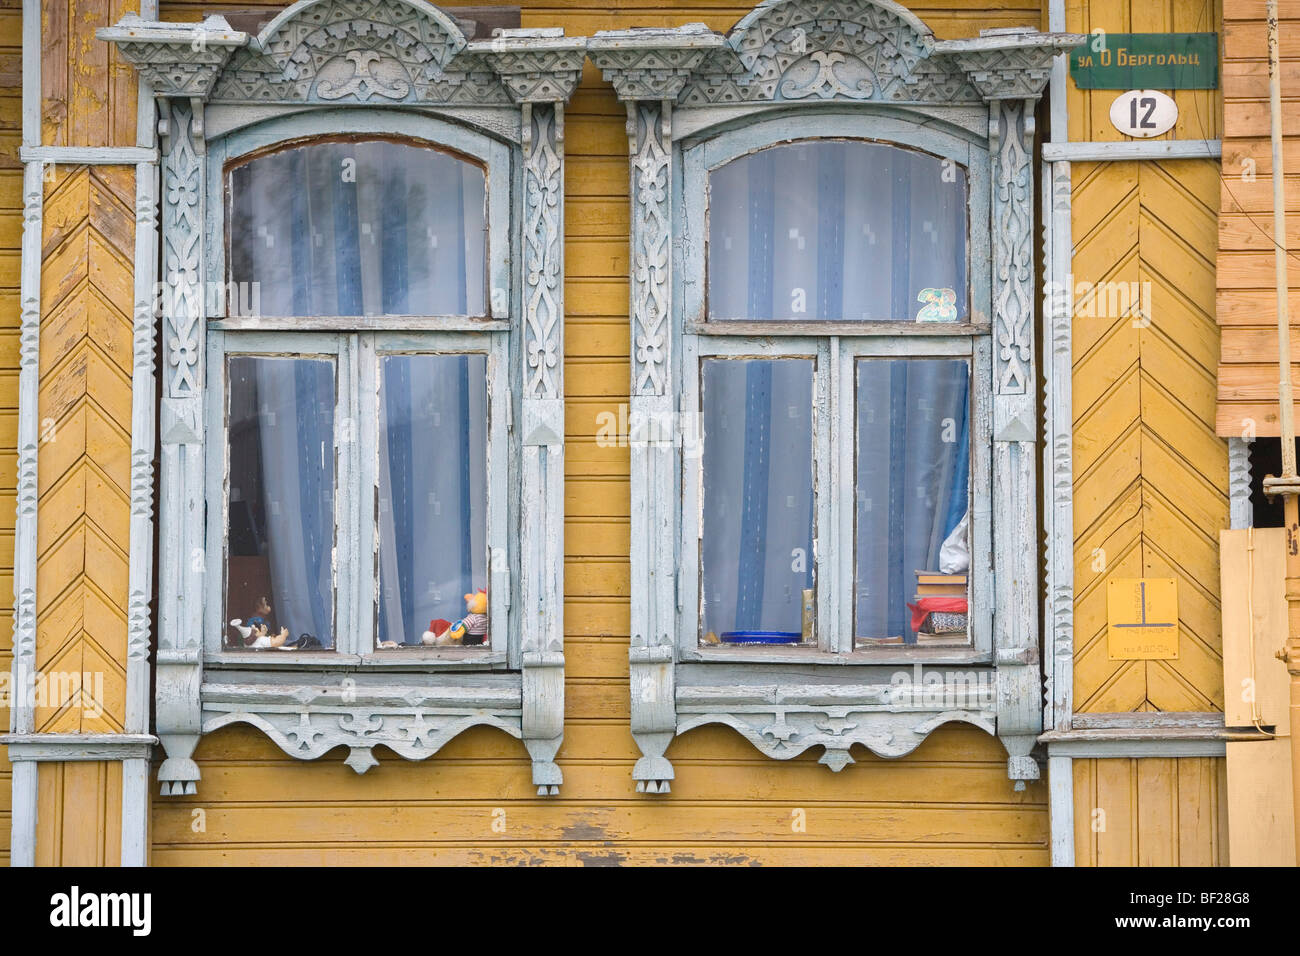 Wooden facade of a residential building in Uglich, Yaroslavl Oblast, Russia - Stock Image